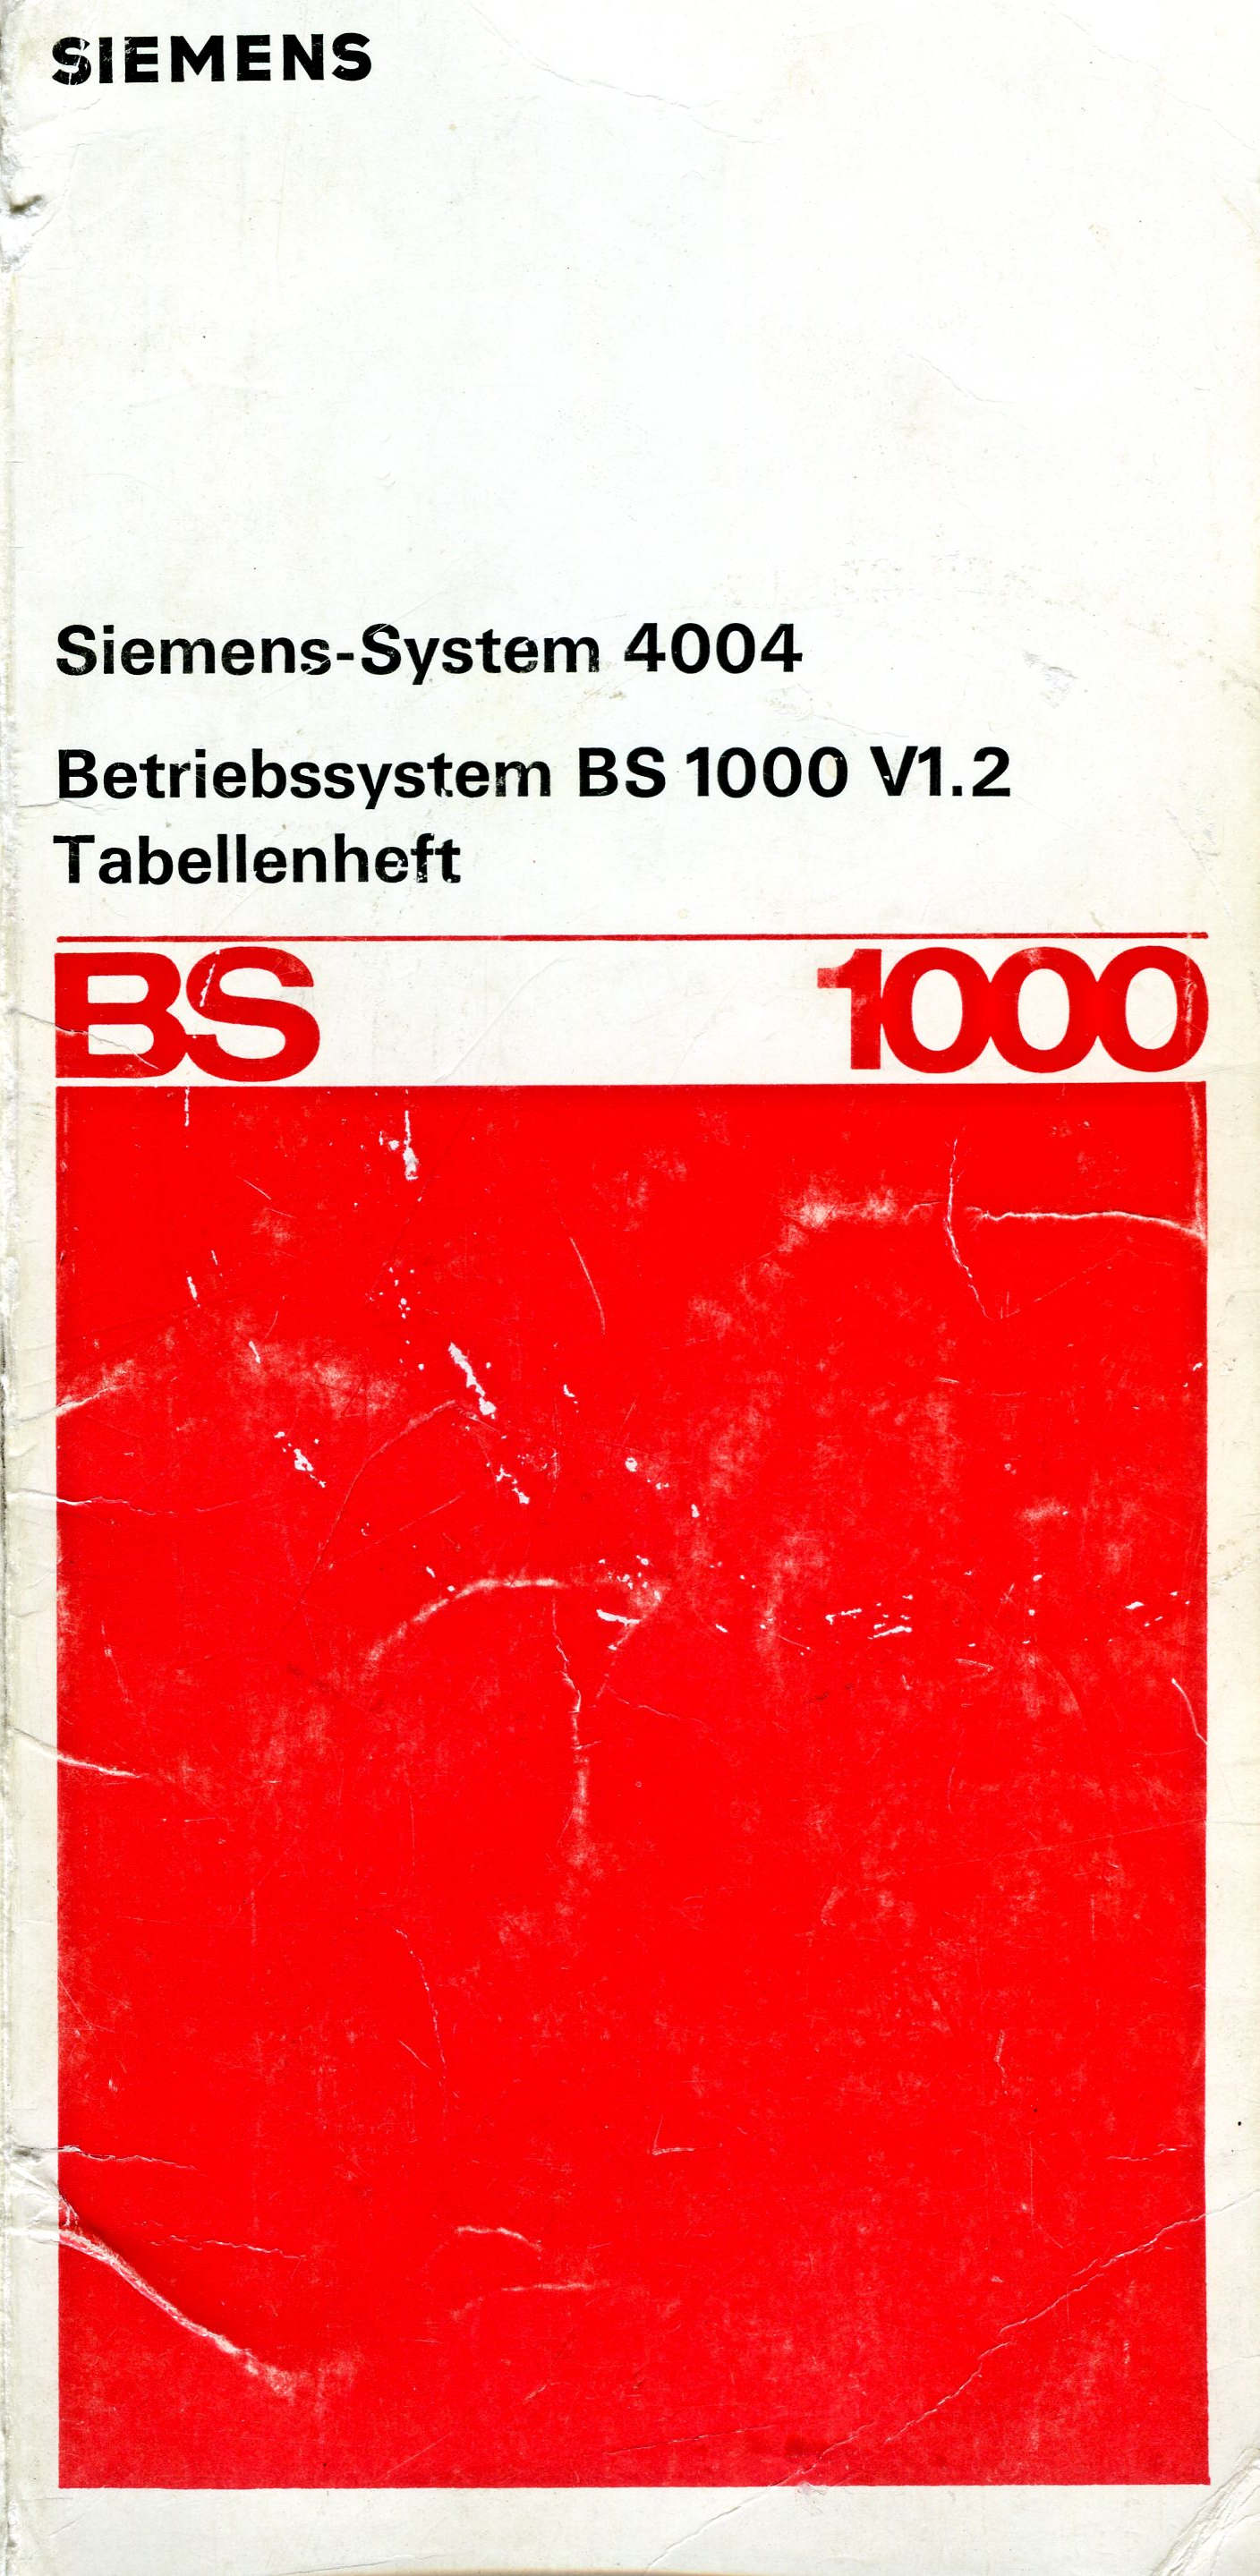 Tabellenheft BS1000 V1.2 1974